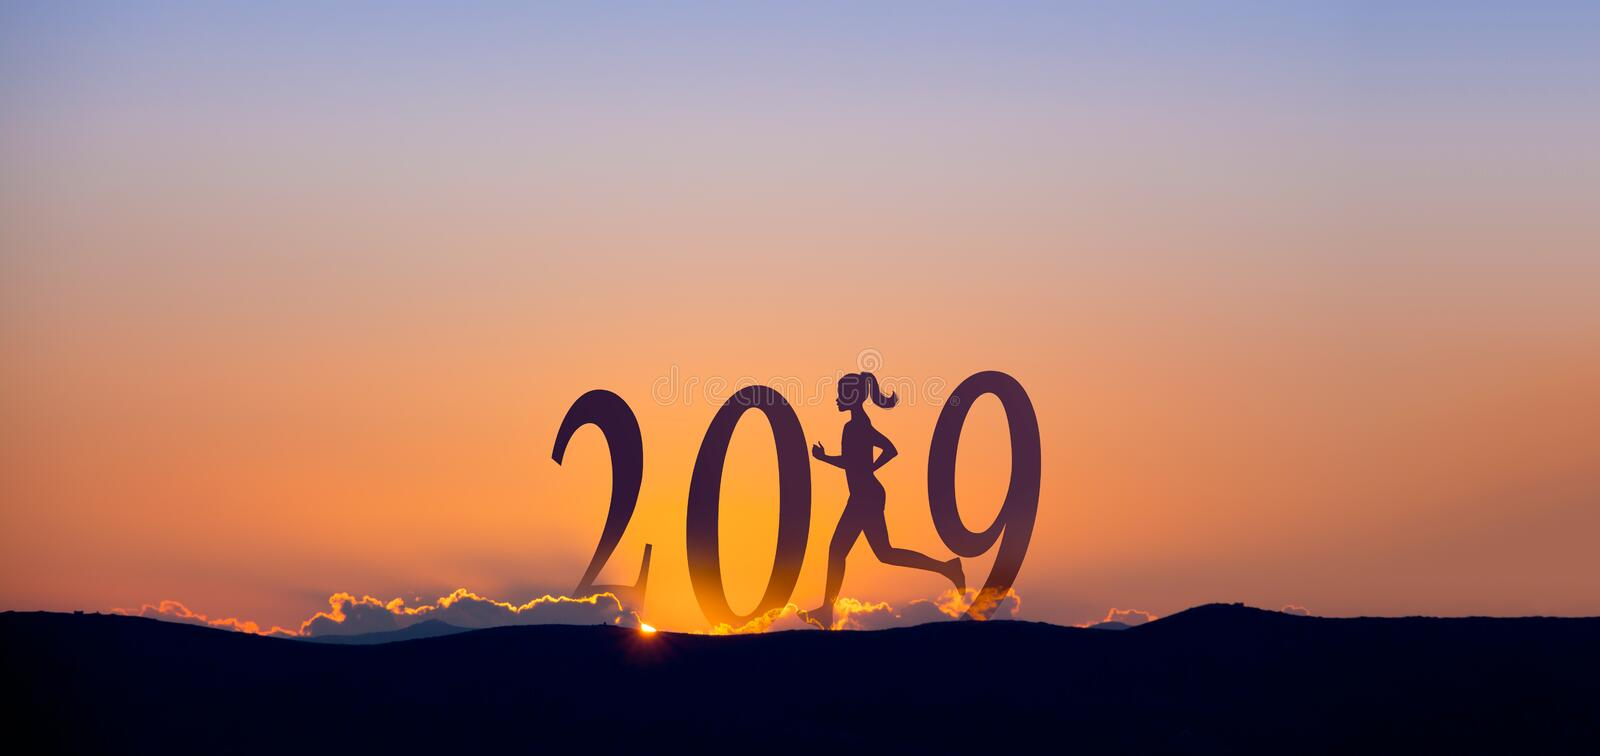 2019 On dark mountains with silhouette of a woman running and sunrise as background. 2019 On dark mountains with silhouette of a woman running and sunrise as royalty free stock photography